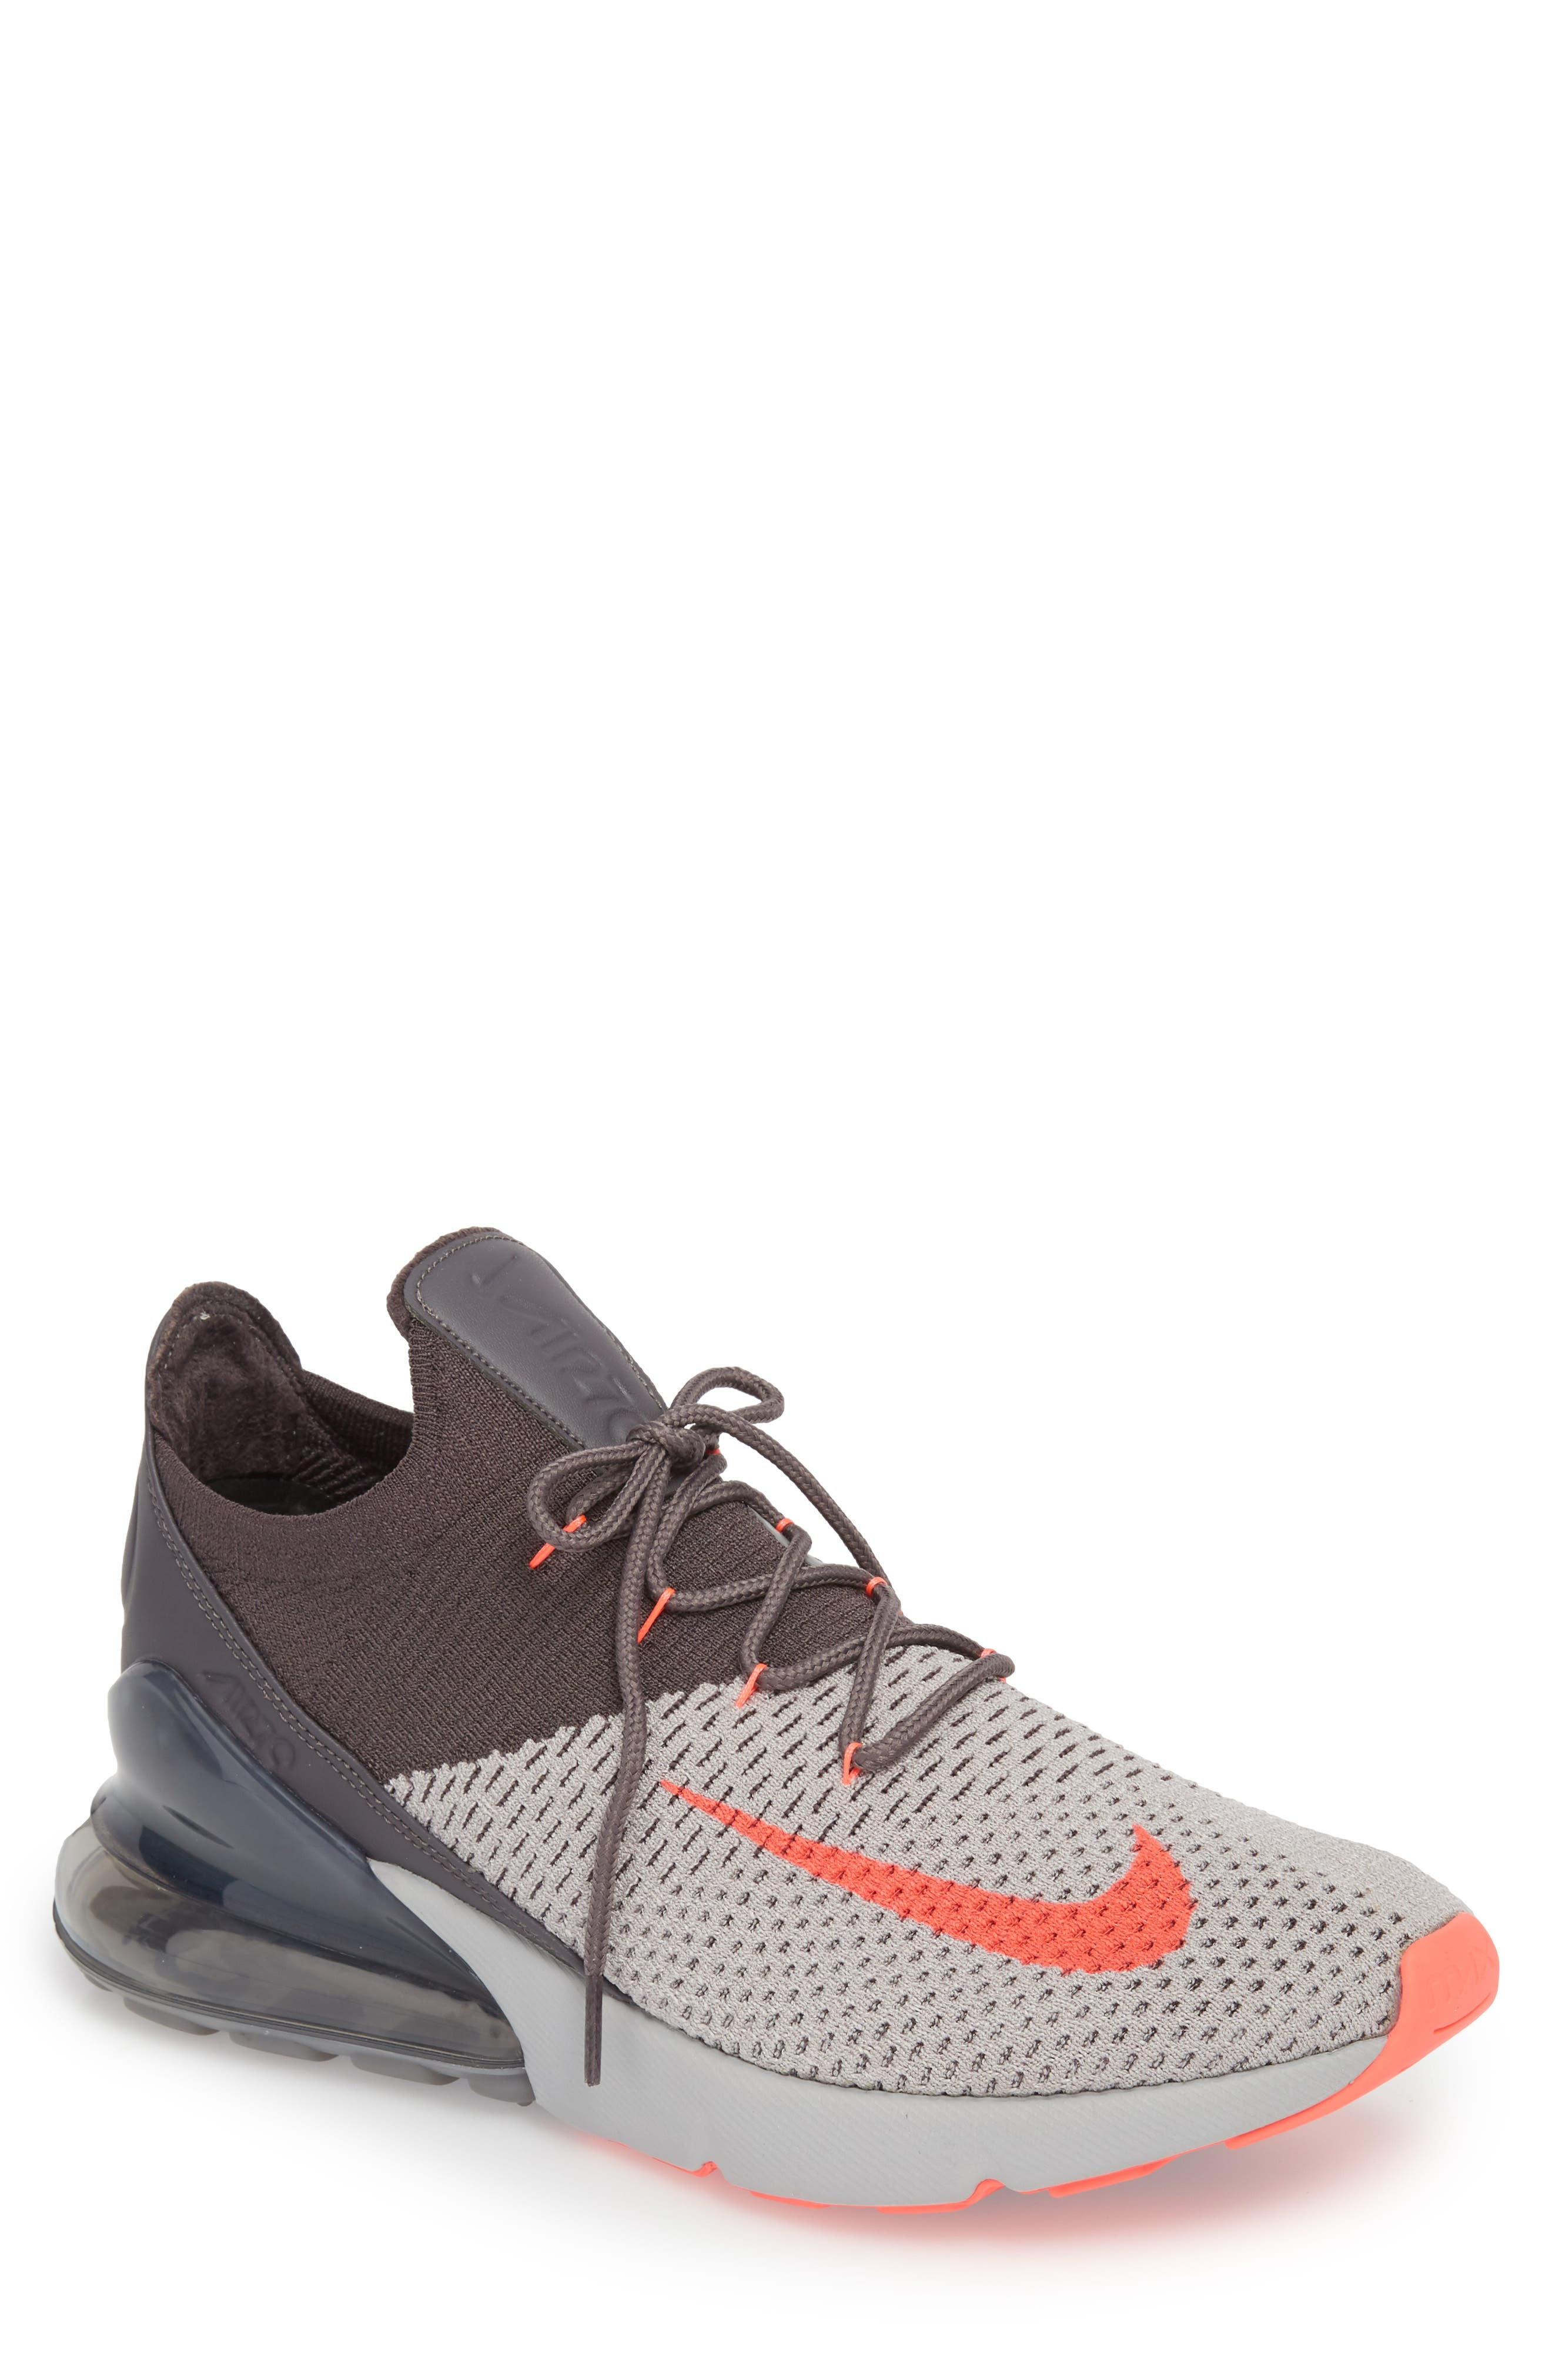 Air Max 270 Flyknit Sneaker,                         Main,                         color, ATMOSPHERE GREY/ HYPER PUNCH